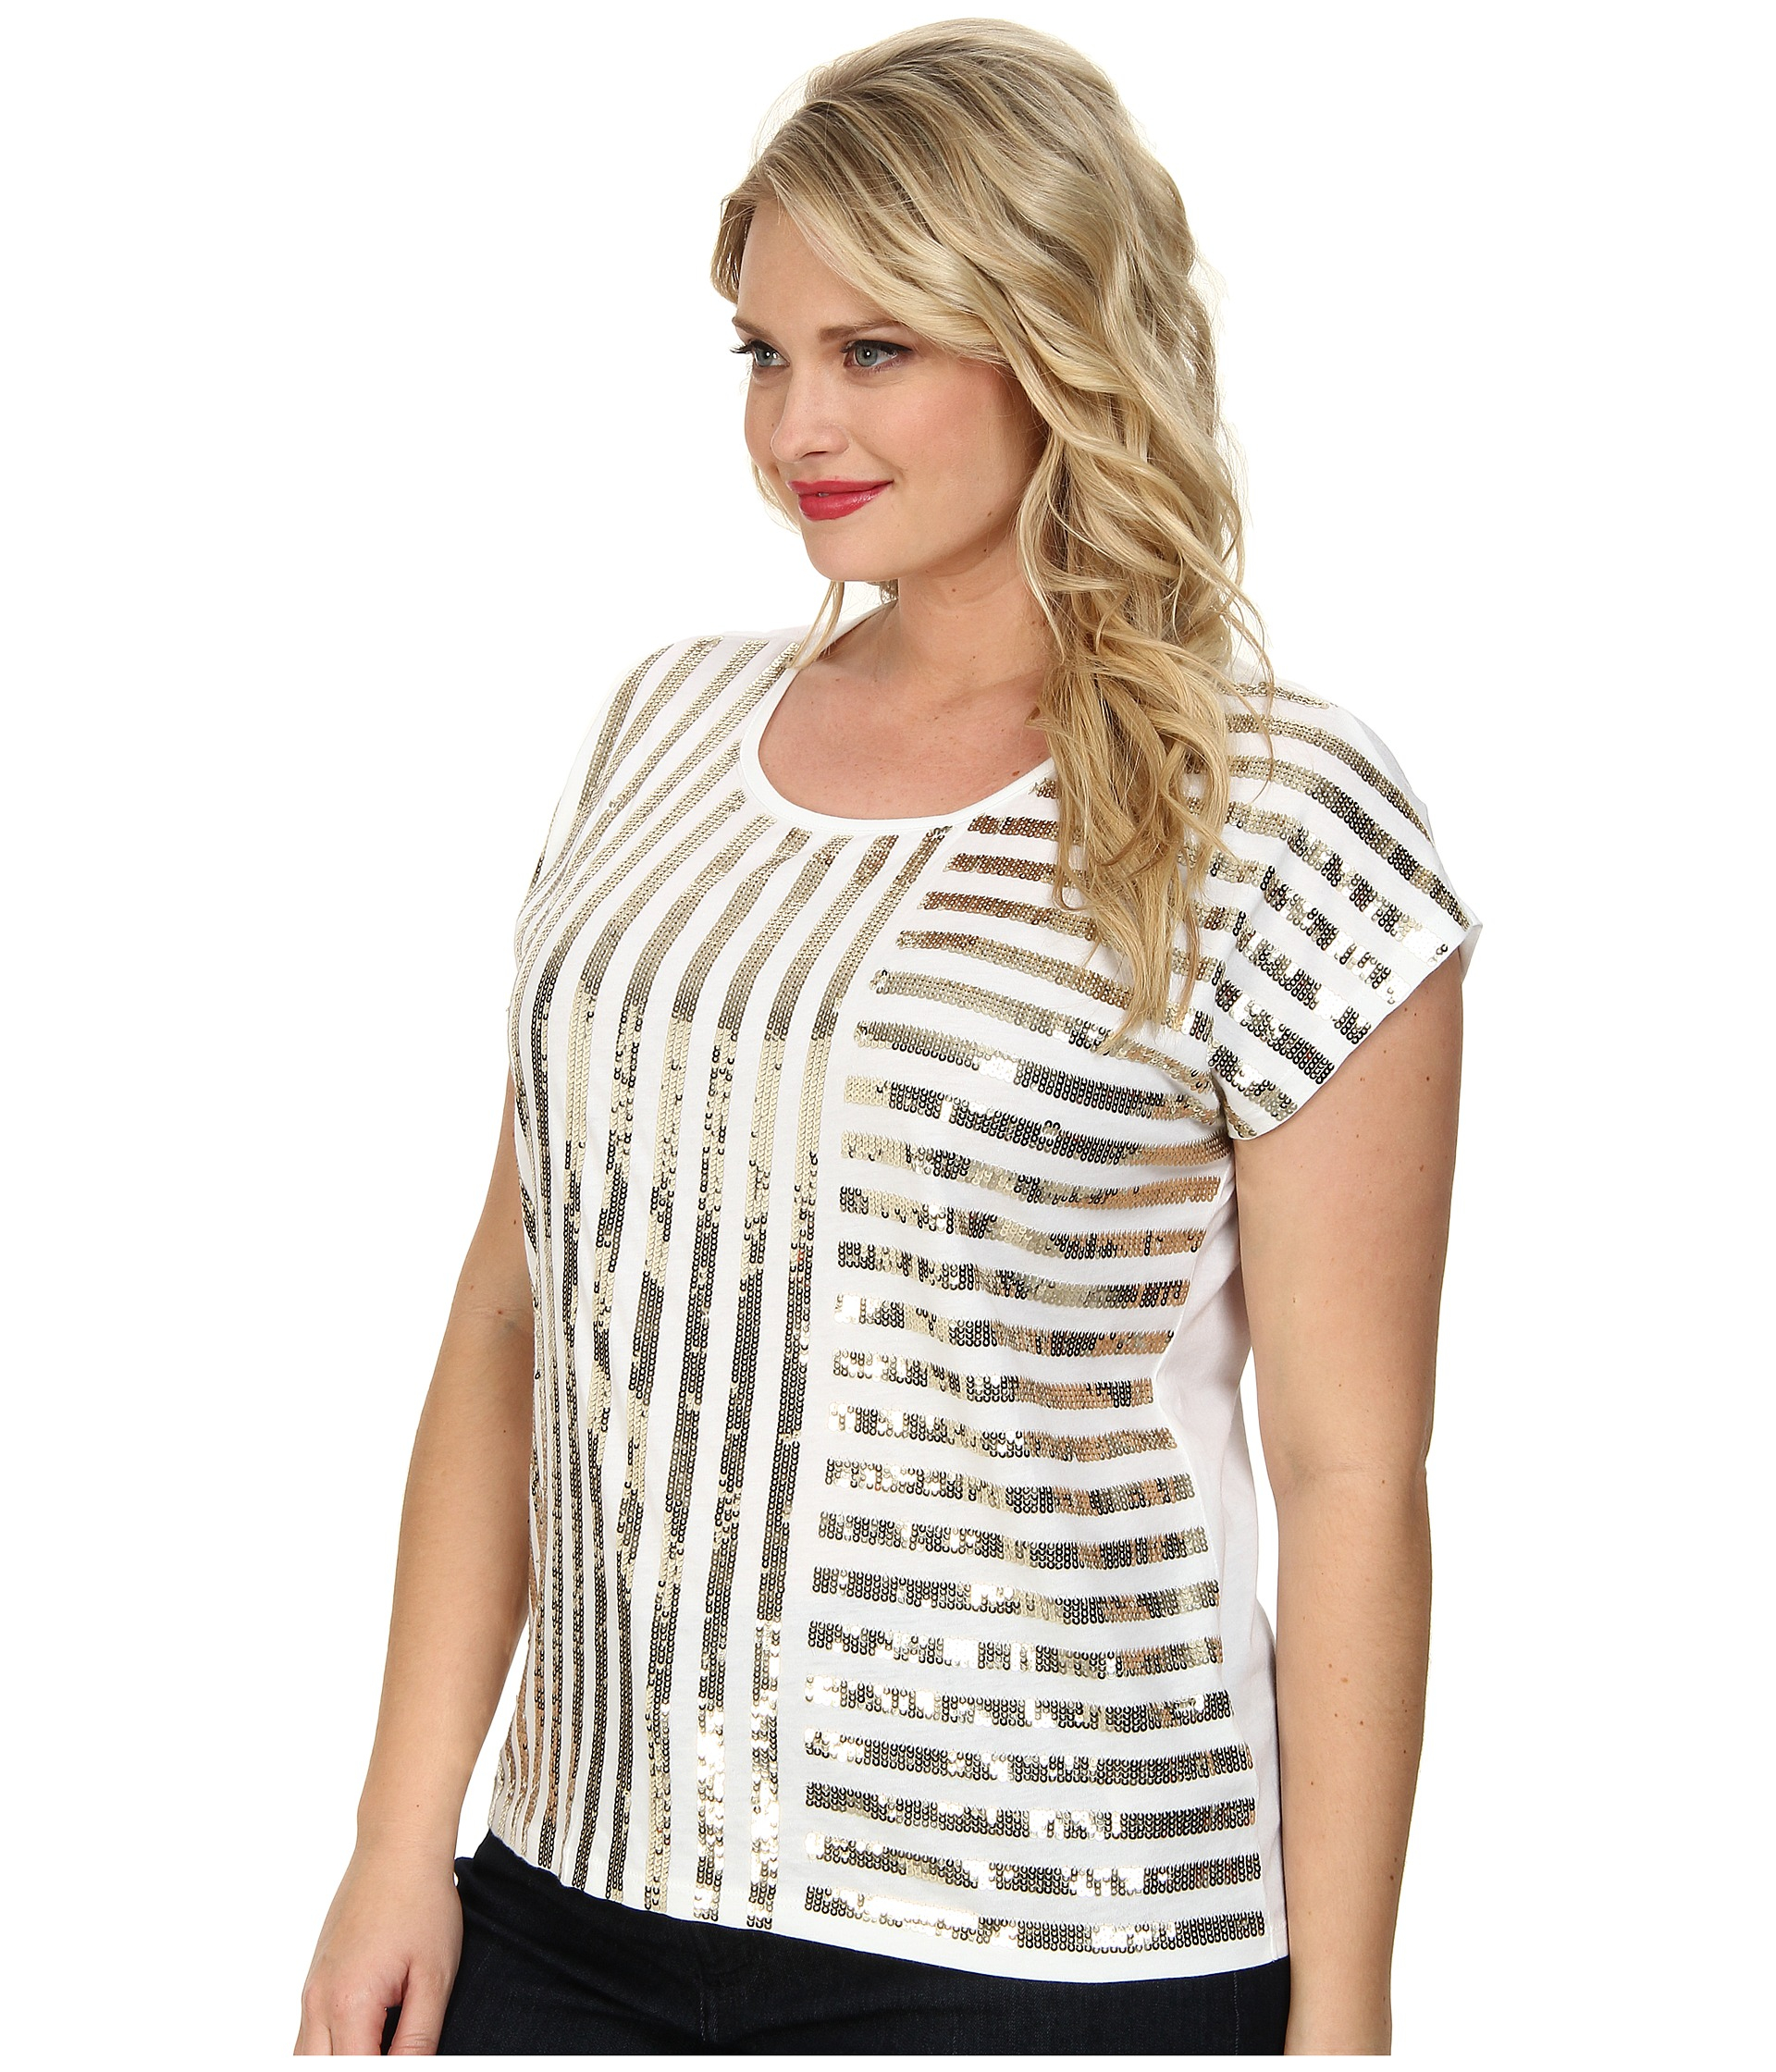 bab92cbf Plus Size Sequin Tops Blouse - Image Of Blouse and Pocket